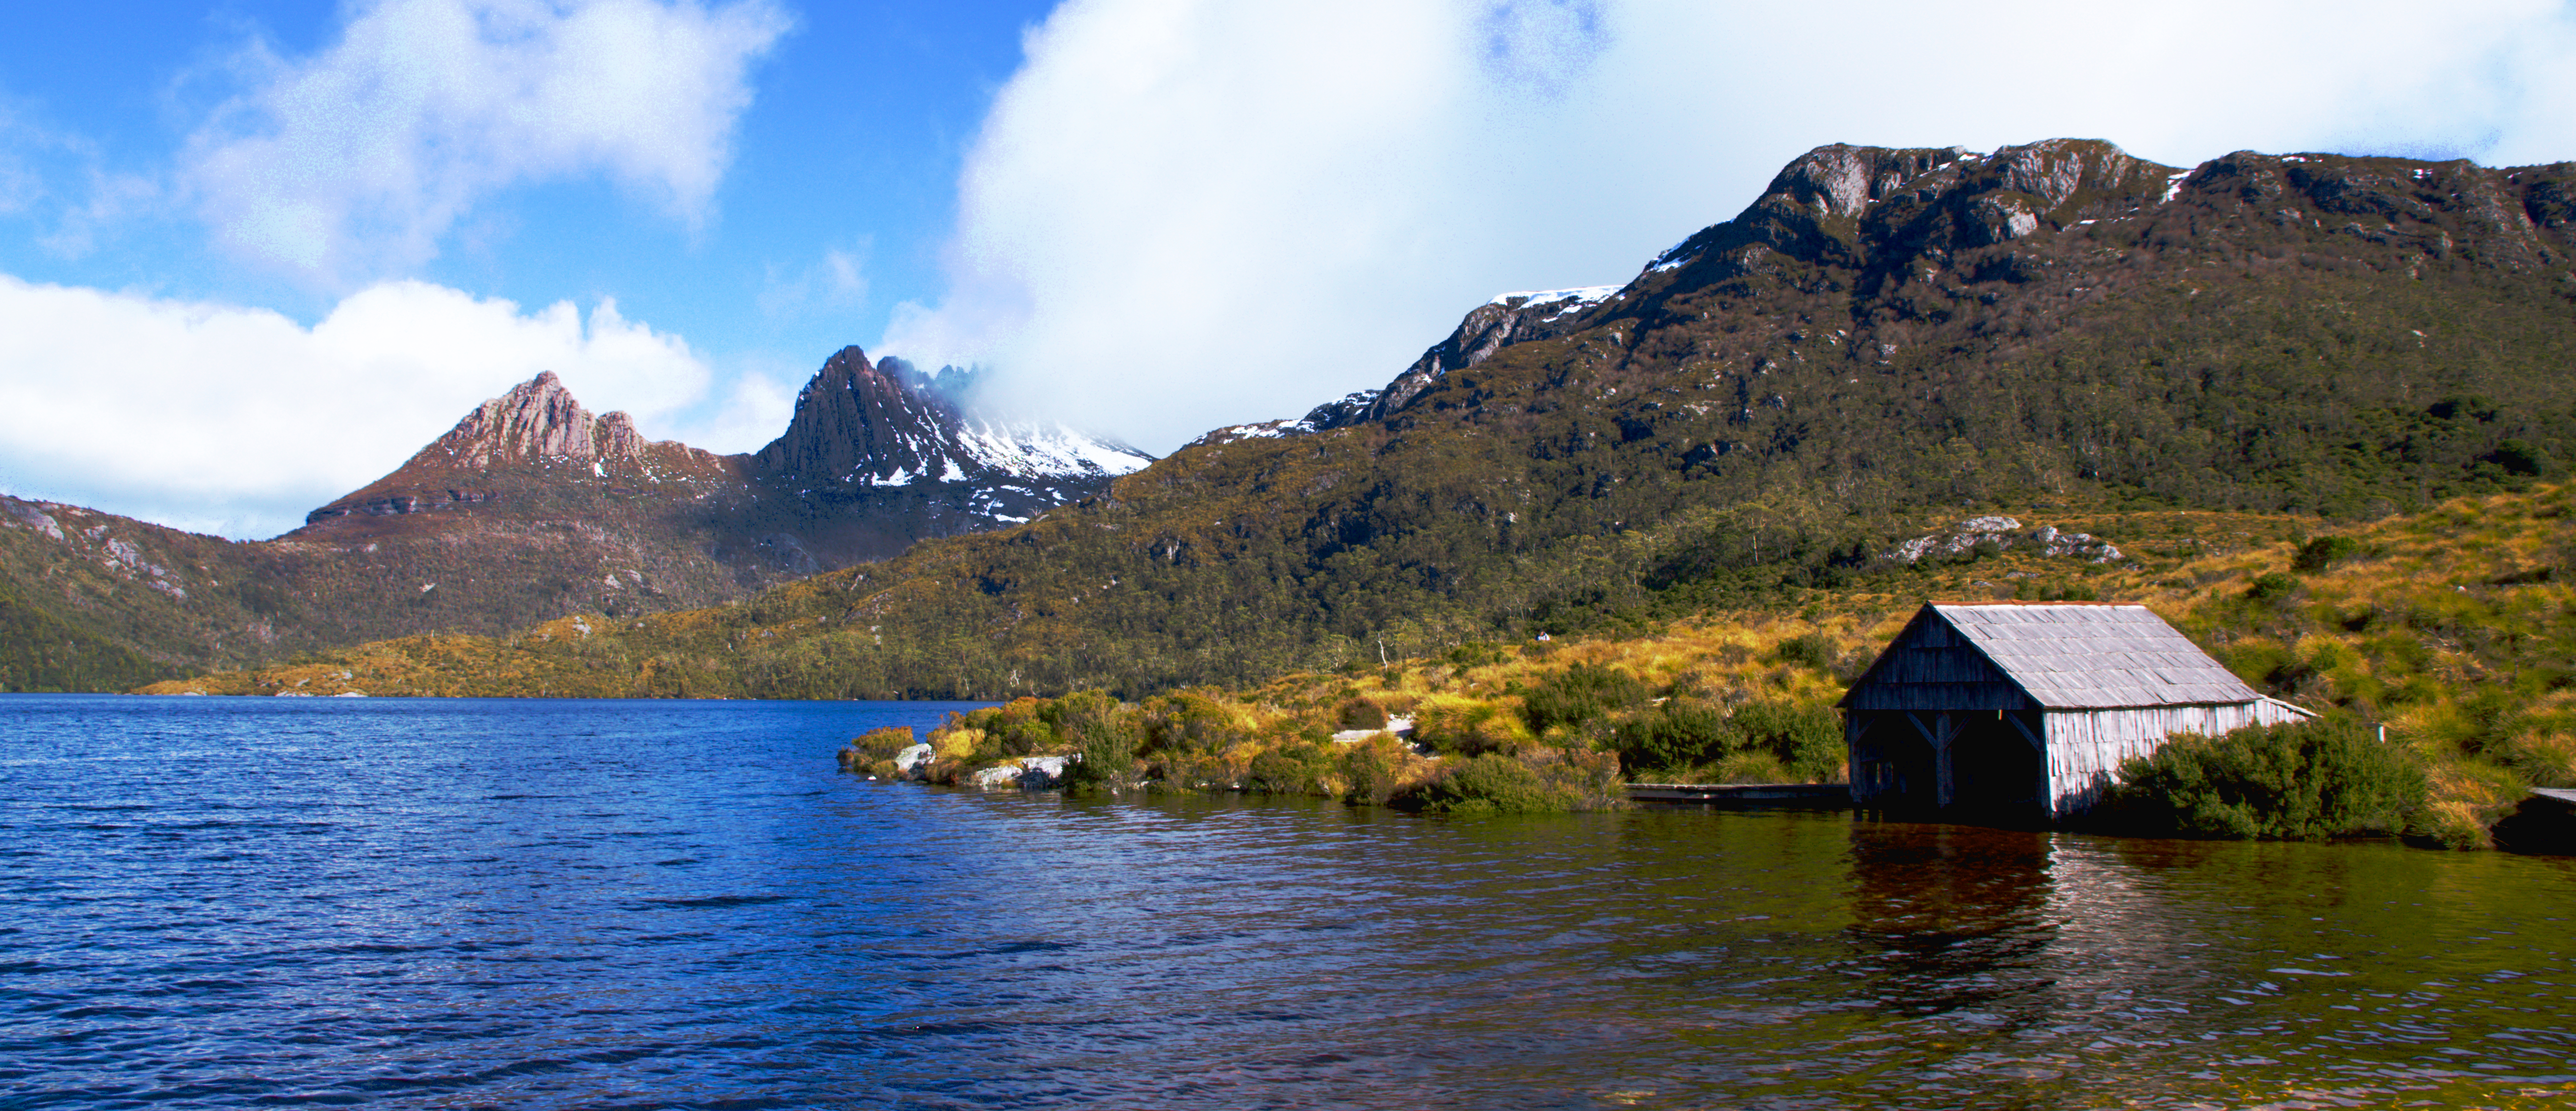 Boat Shed at Cradle Mountain